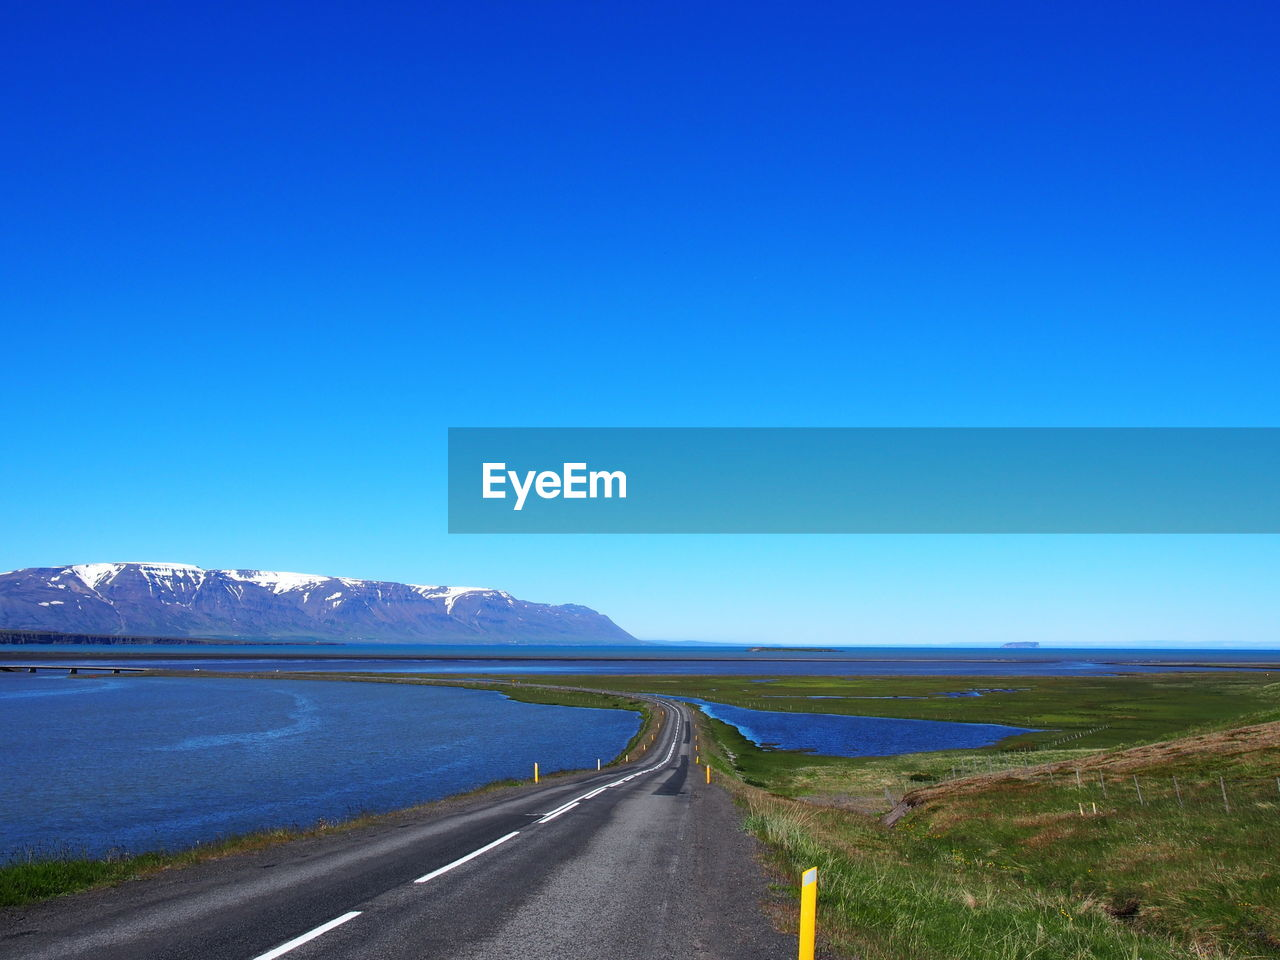 sky, road, blue, copy space, transportation, tranquil scene, tranquility, nature, clear sky, beauty in nature, the way forward, environment, direction, water, no people, scenics - nature, non-urban scene, landscape, mountain, day, diminishing perspective, outdoors, dividing line